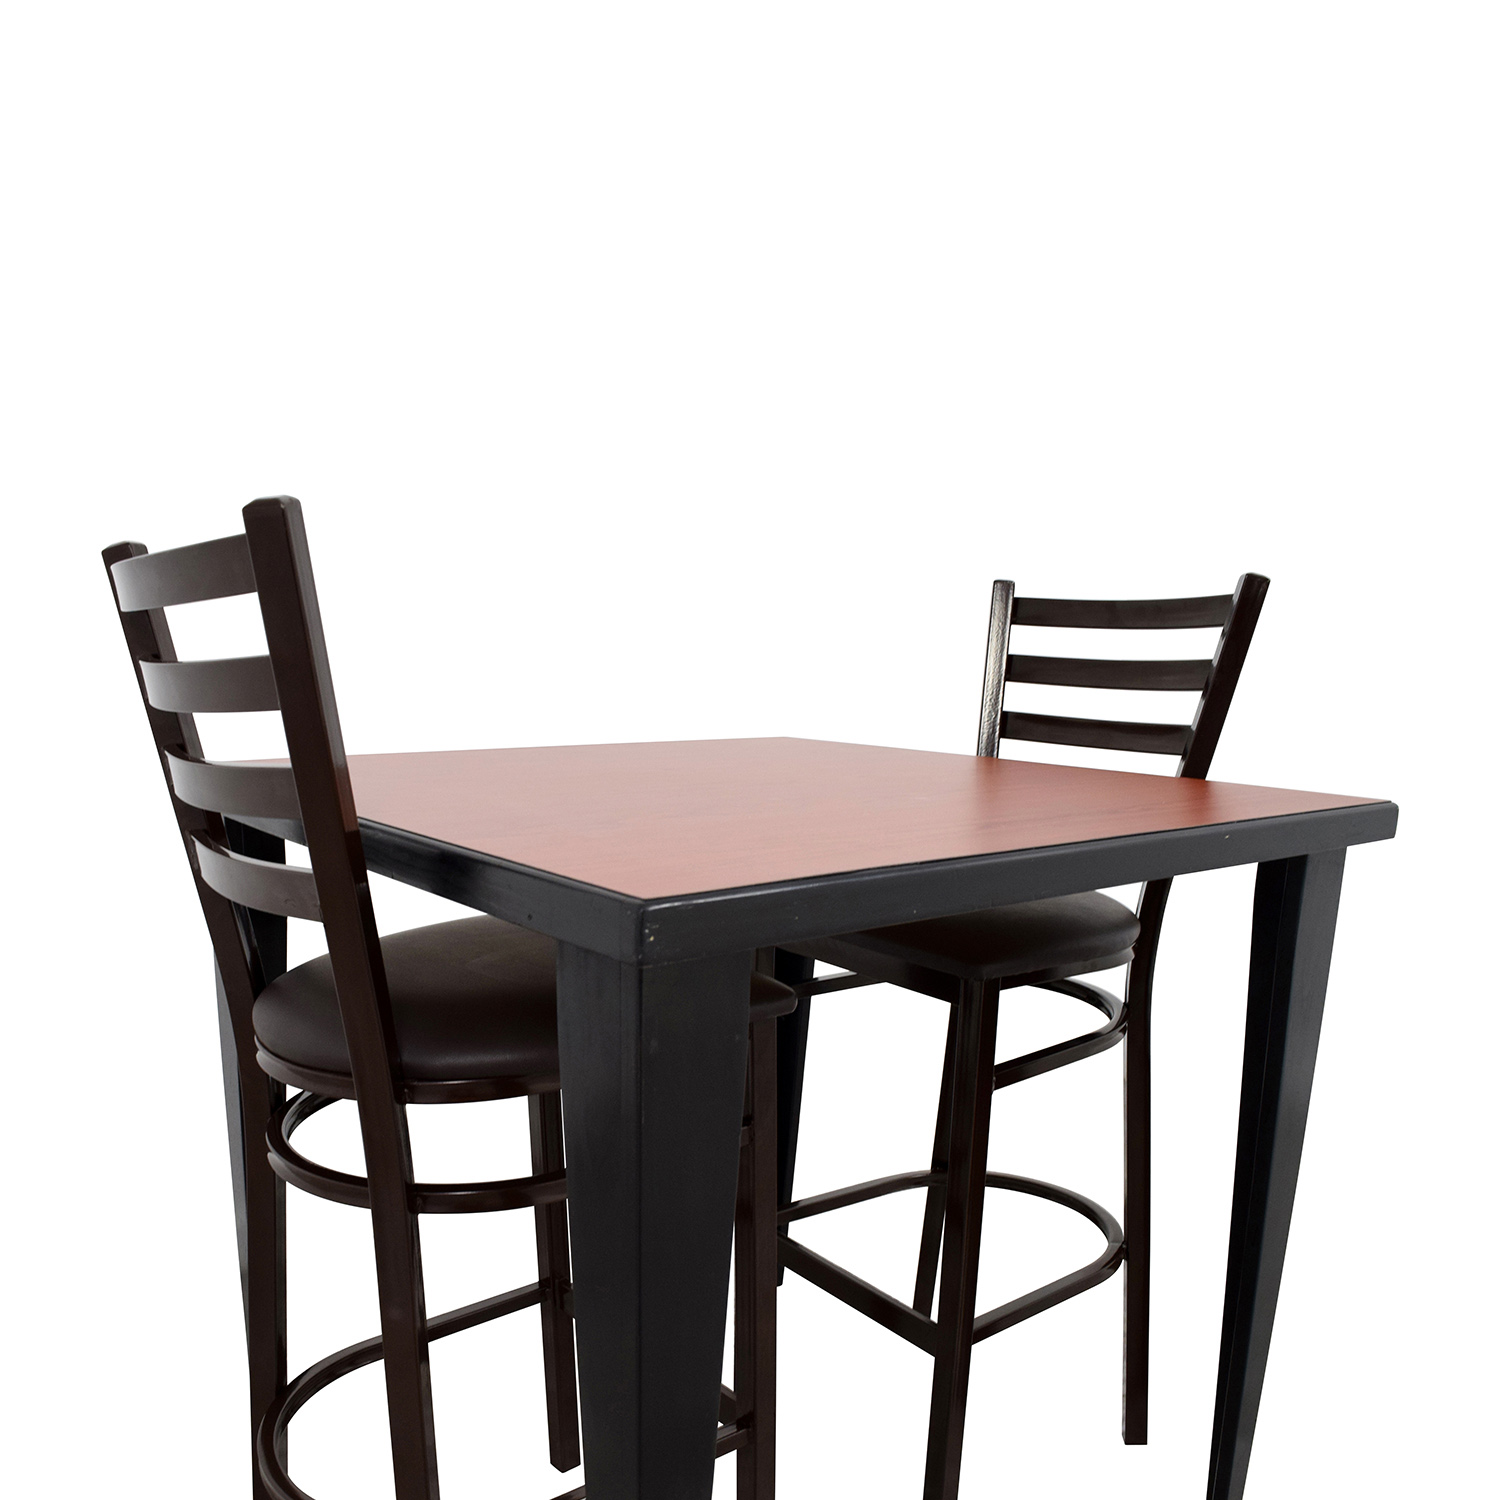 76 OFF  Counter Height Kitchen Table and Two Chairs  Tables